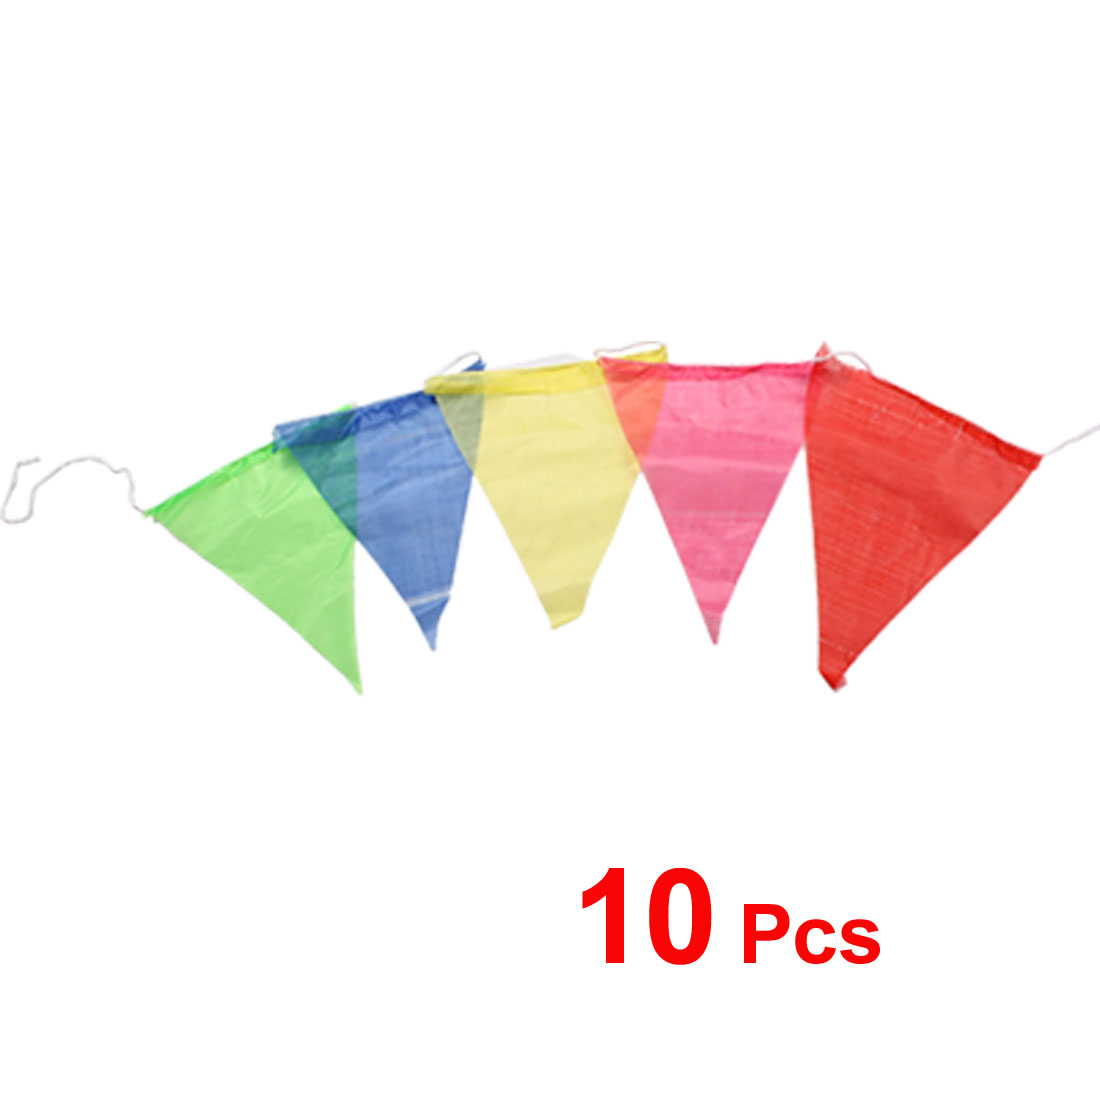 "10 Pcs 8.3"" x 6.8"" Multicolor Flag Pennant Rainbow Banner 4.5M String"